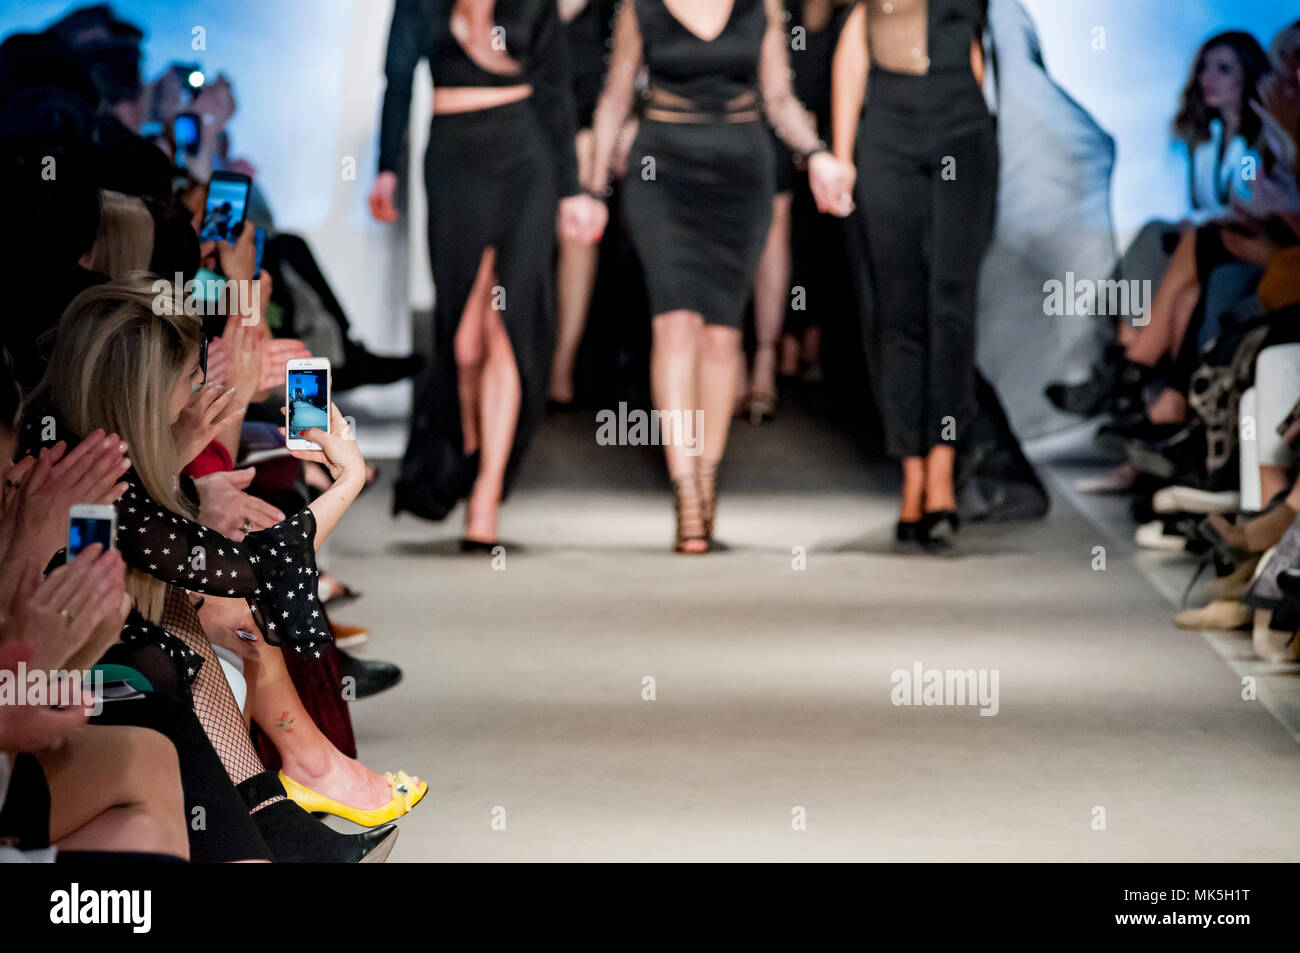 female models at finale of the fashion show - Stock Image